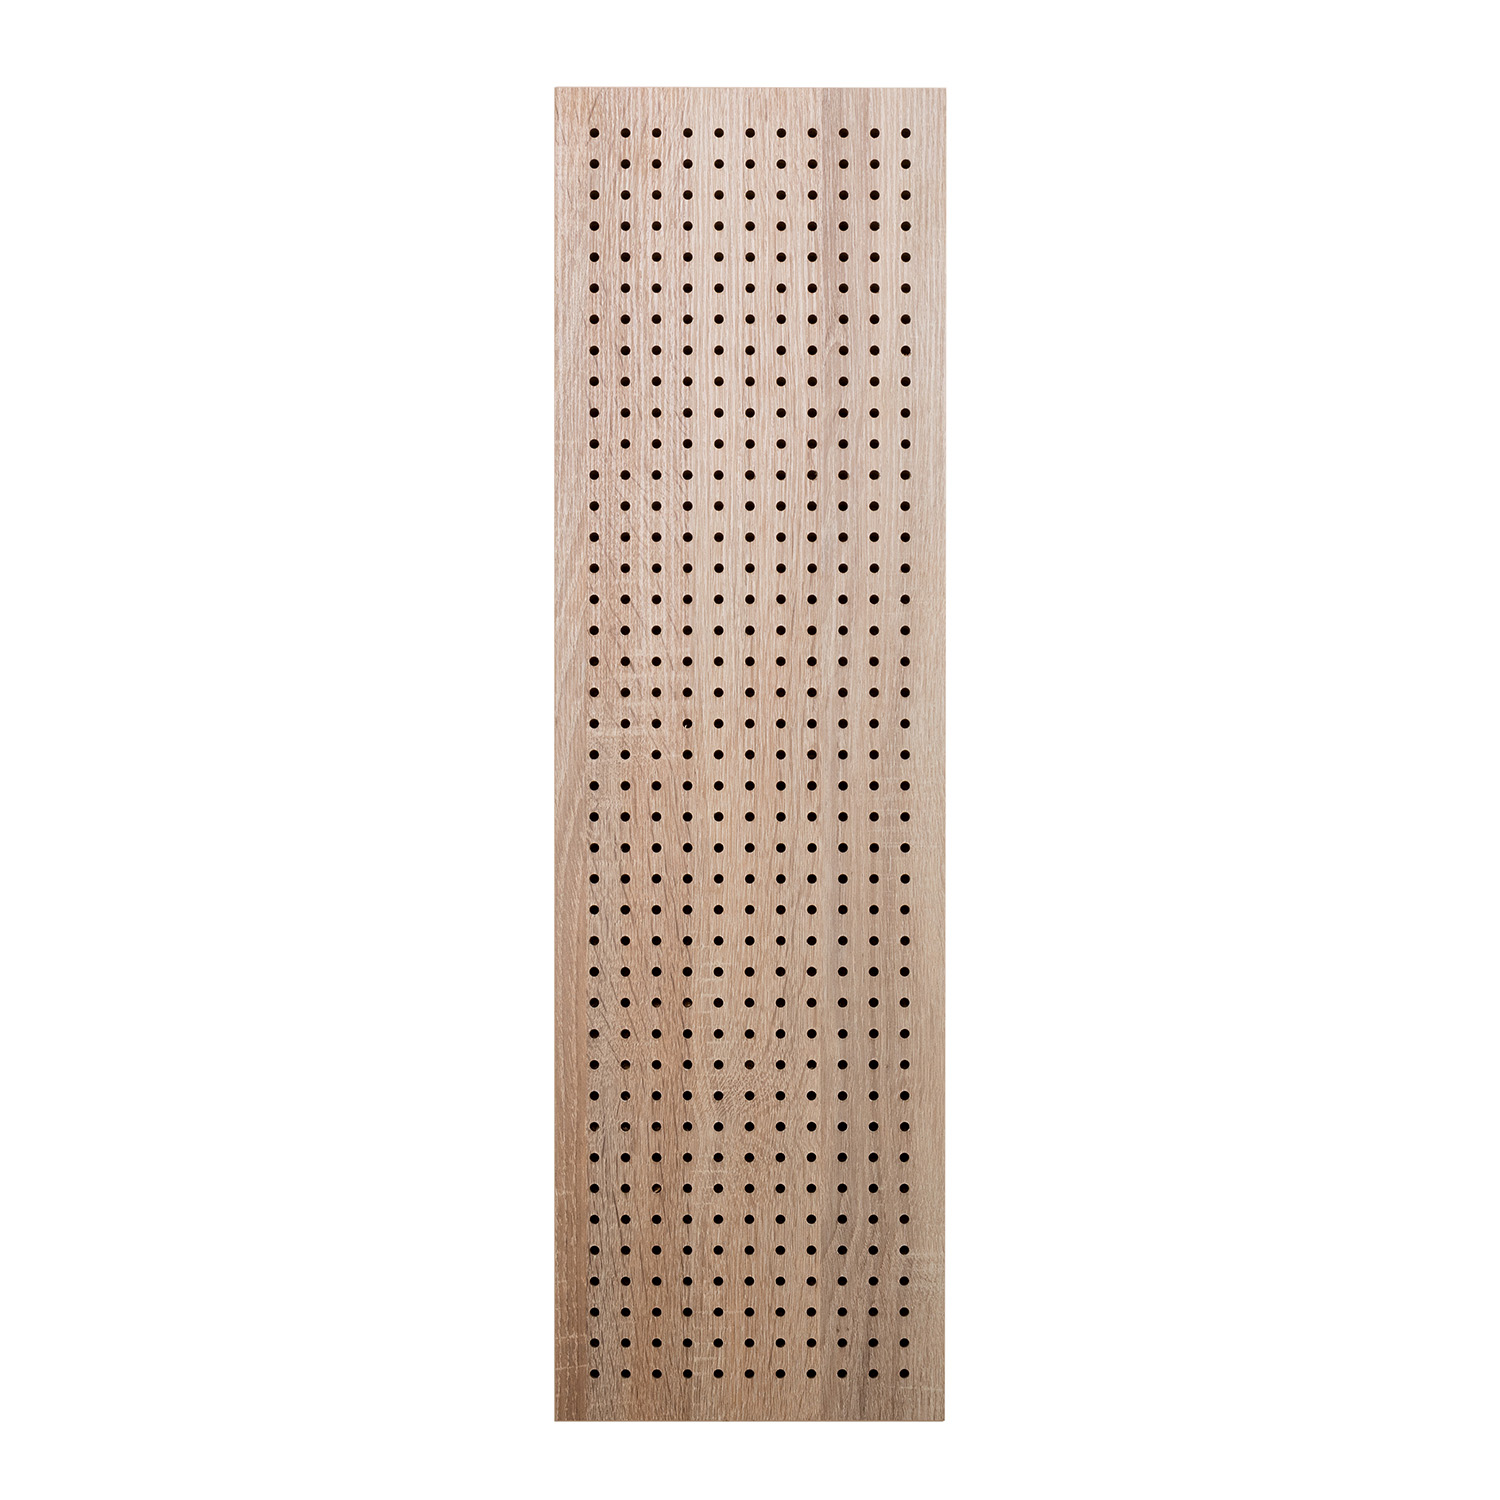 RMF Pin-Board 200 mm